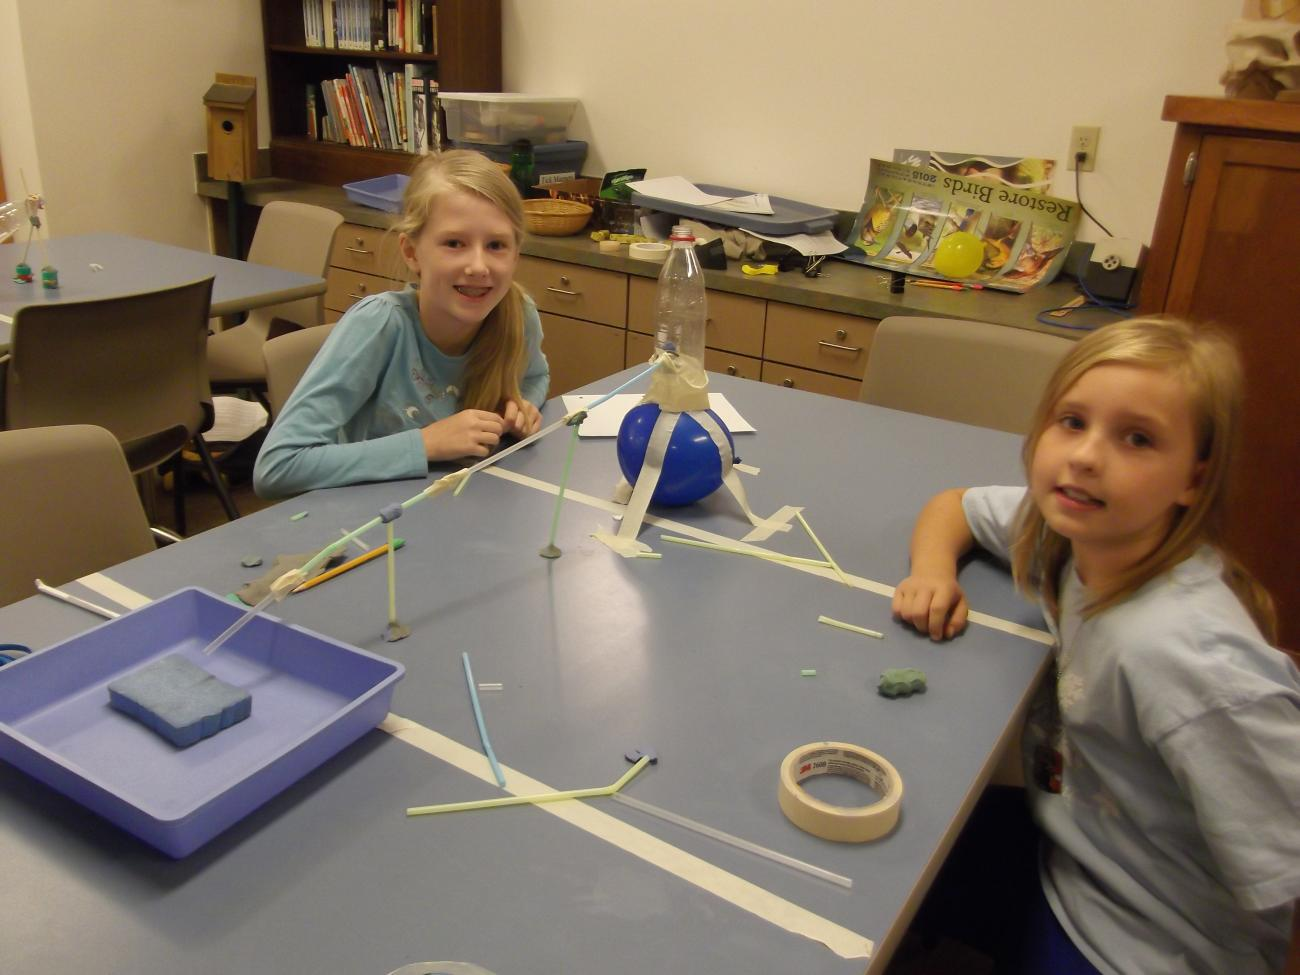 Girls in camp showing off their irrigation engineering project